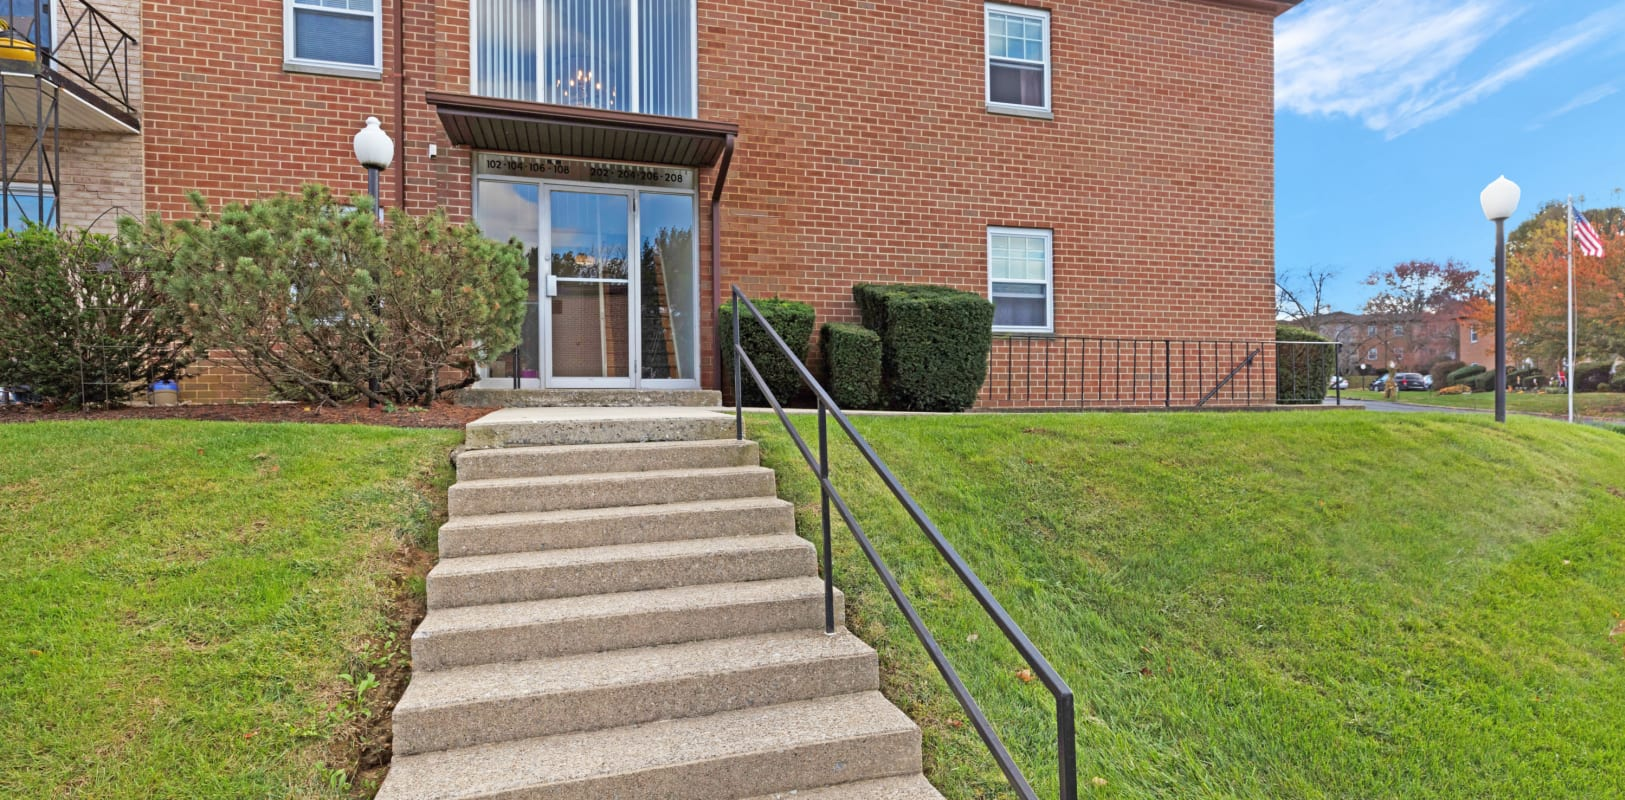 Stairway with handrail up to the beautiful brick Northfield Apartments in Bethlehem, Pennsylvania